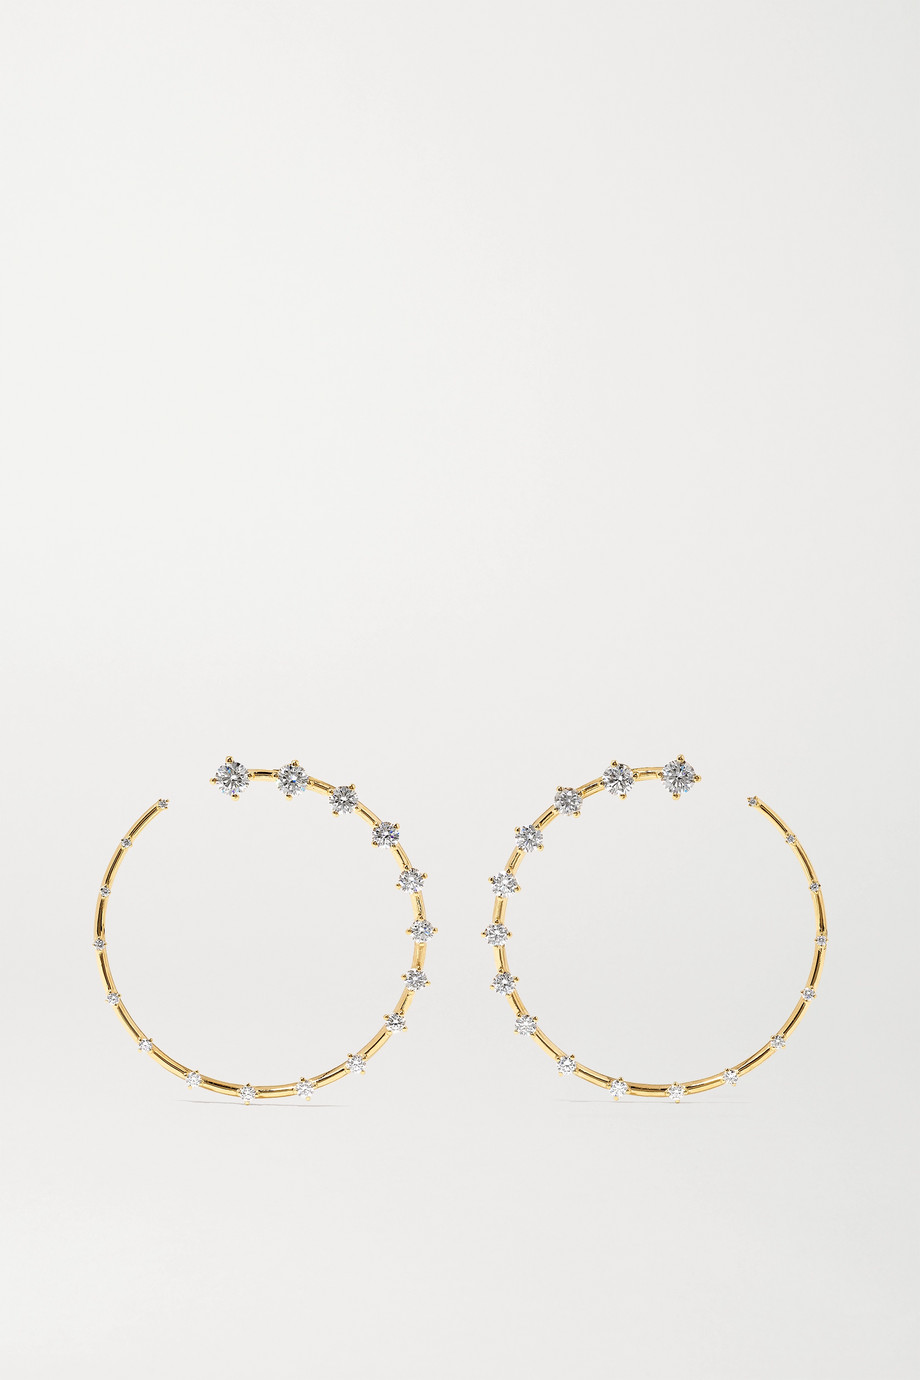 FERNANDO JORGE Circle Large 18-karat gold diamond earrings